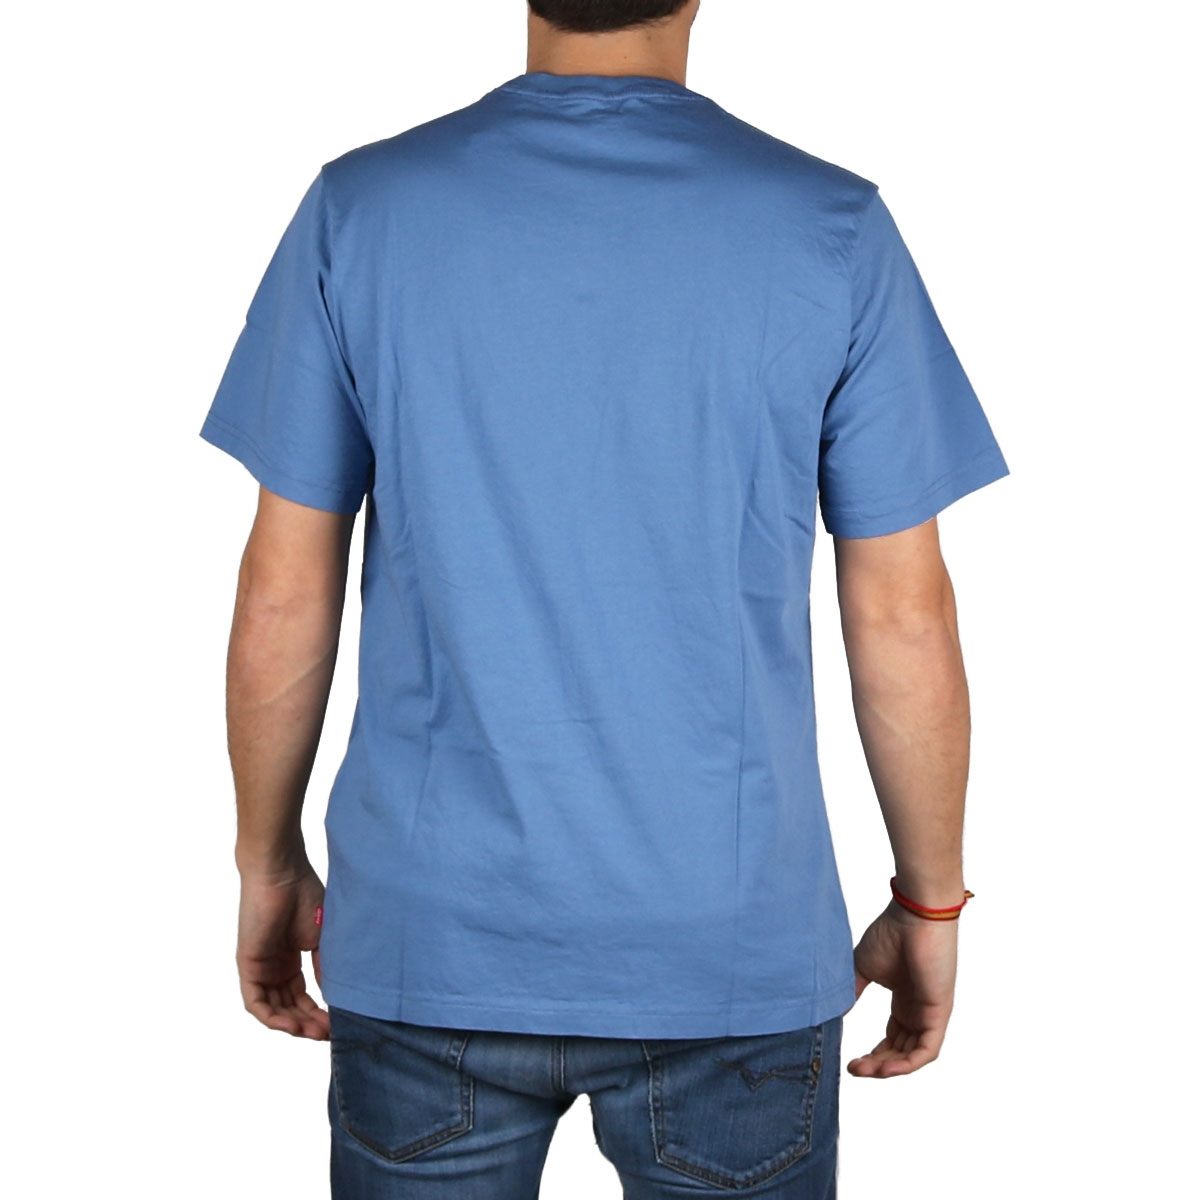 Levis Camiseta Relaxed Graphic Tee Blue Azul Hombre